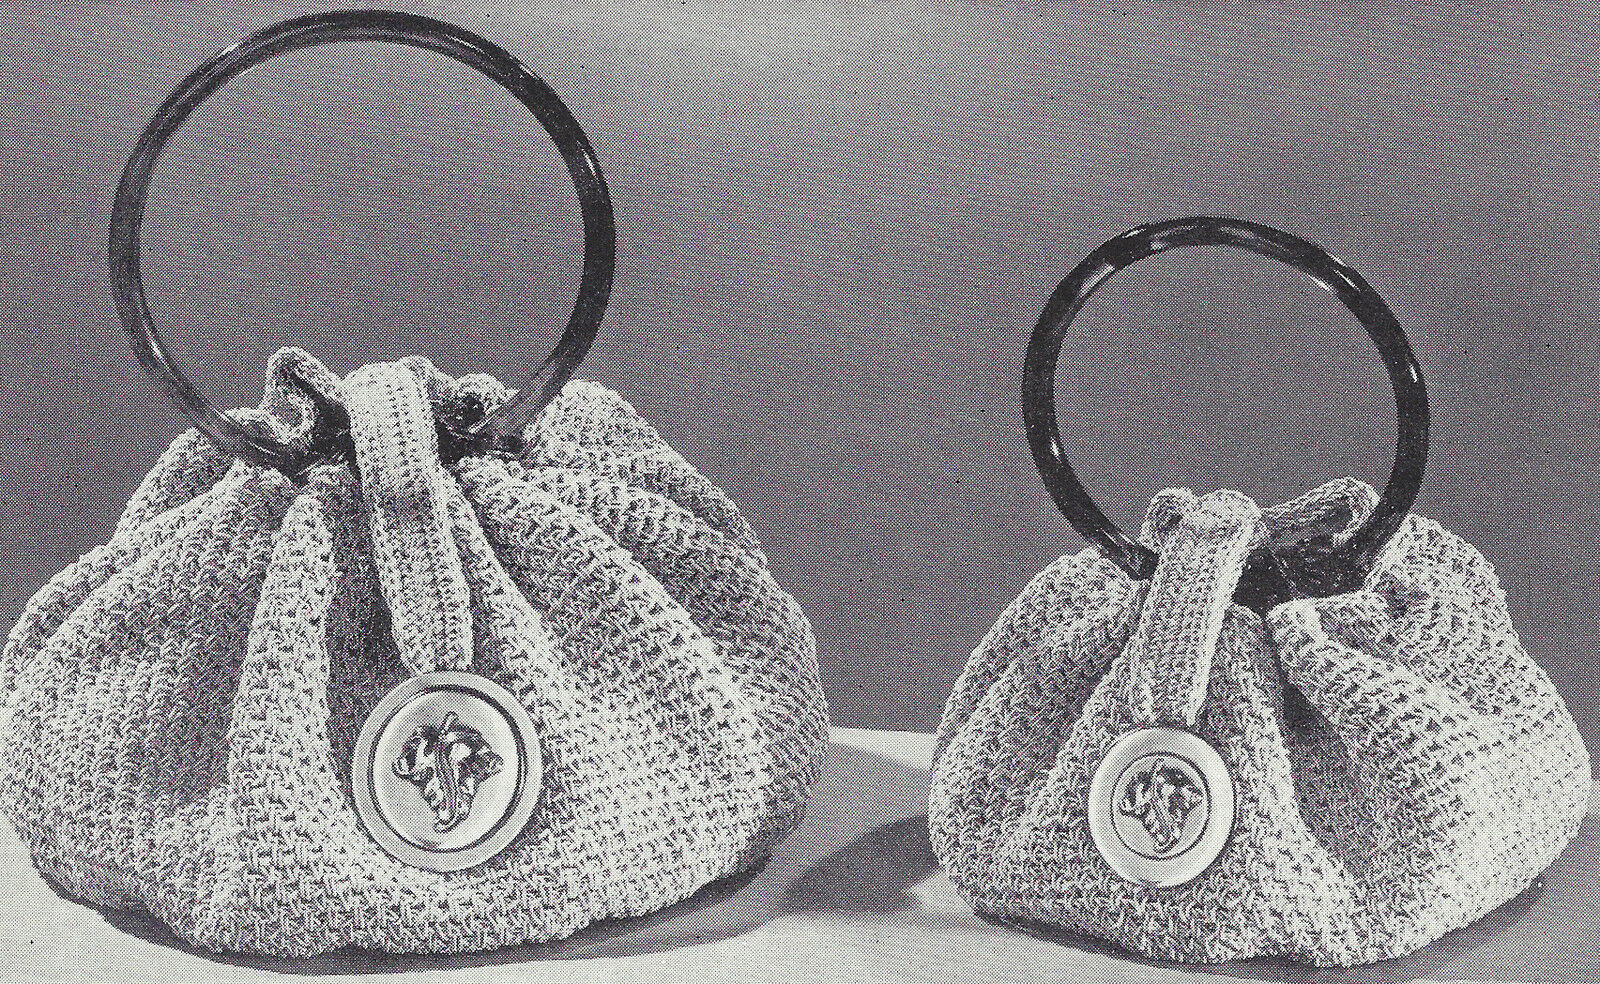 Vintage Crochet Pattern to Make Bracelet Handle Handbag Purse Bag ...